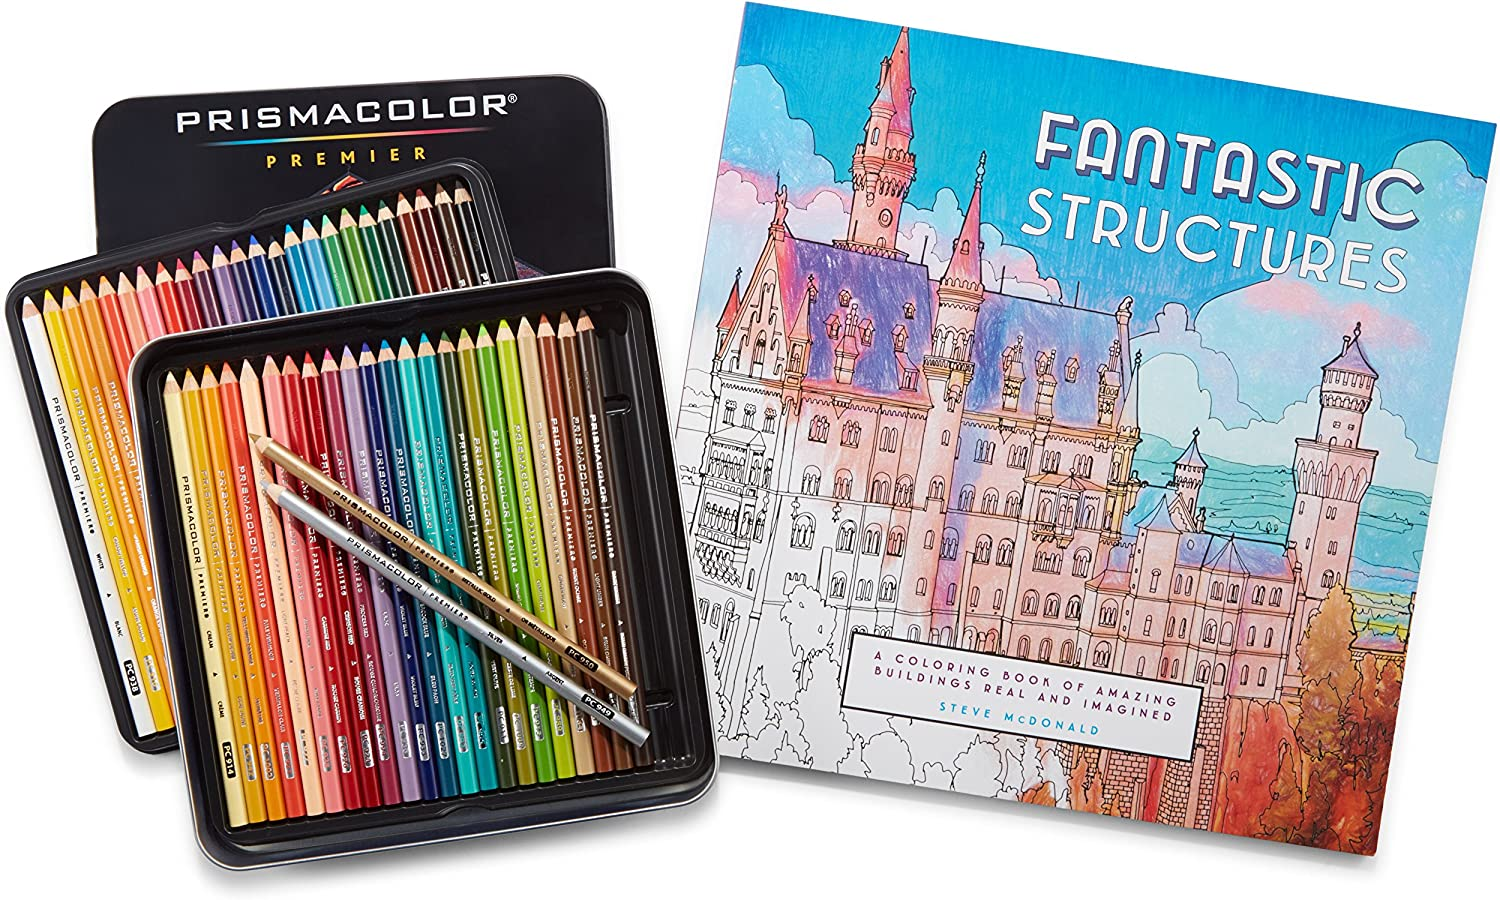 Large-scale sale Prismacolor Premier Colored New Free Shipping Pencils Soft and Adul Core 48 Pack